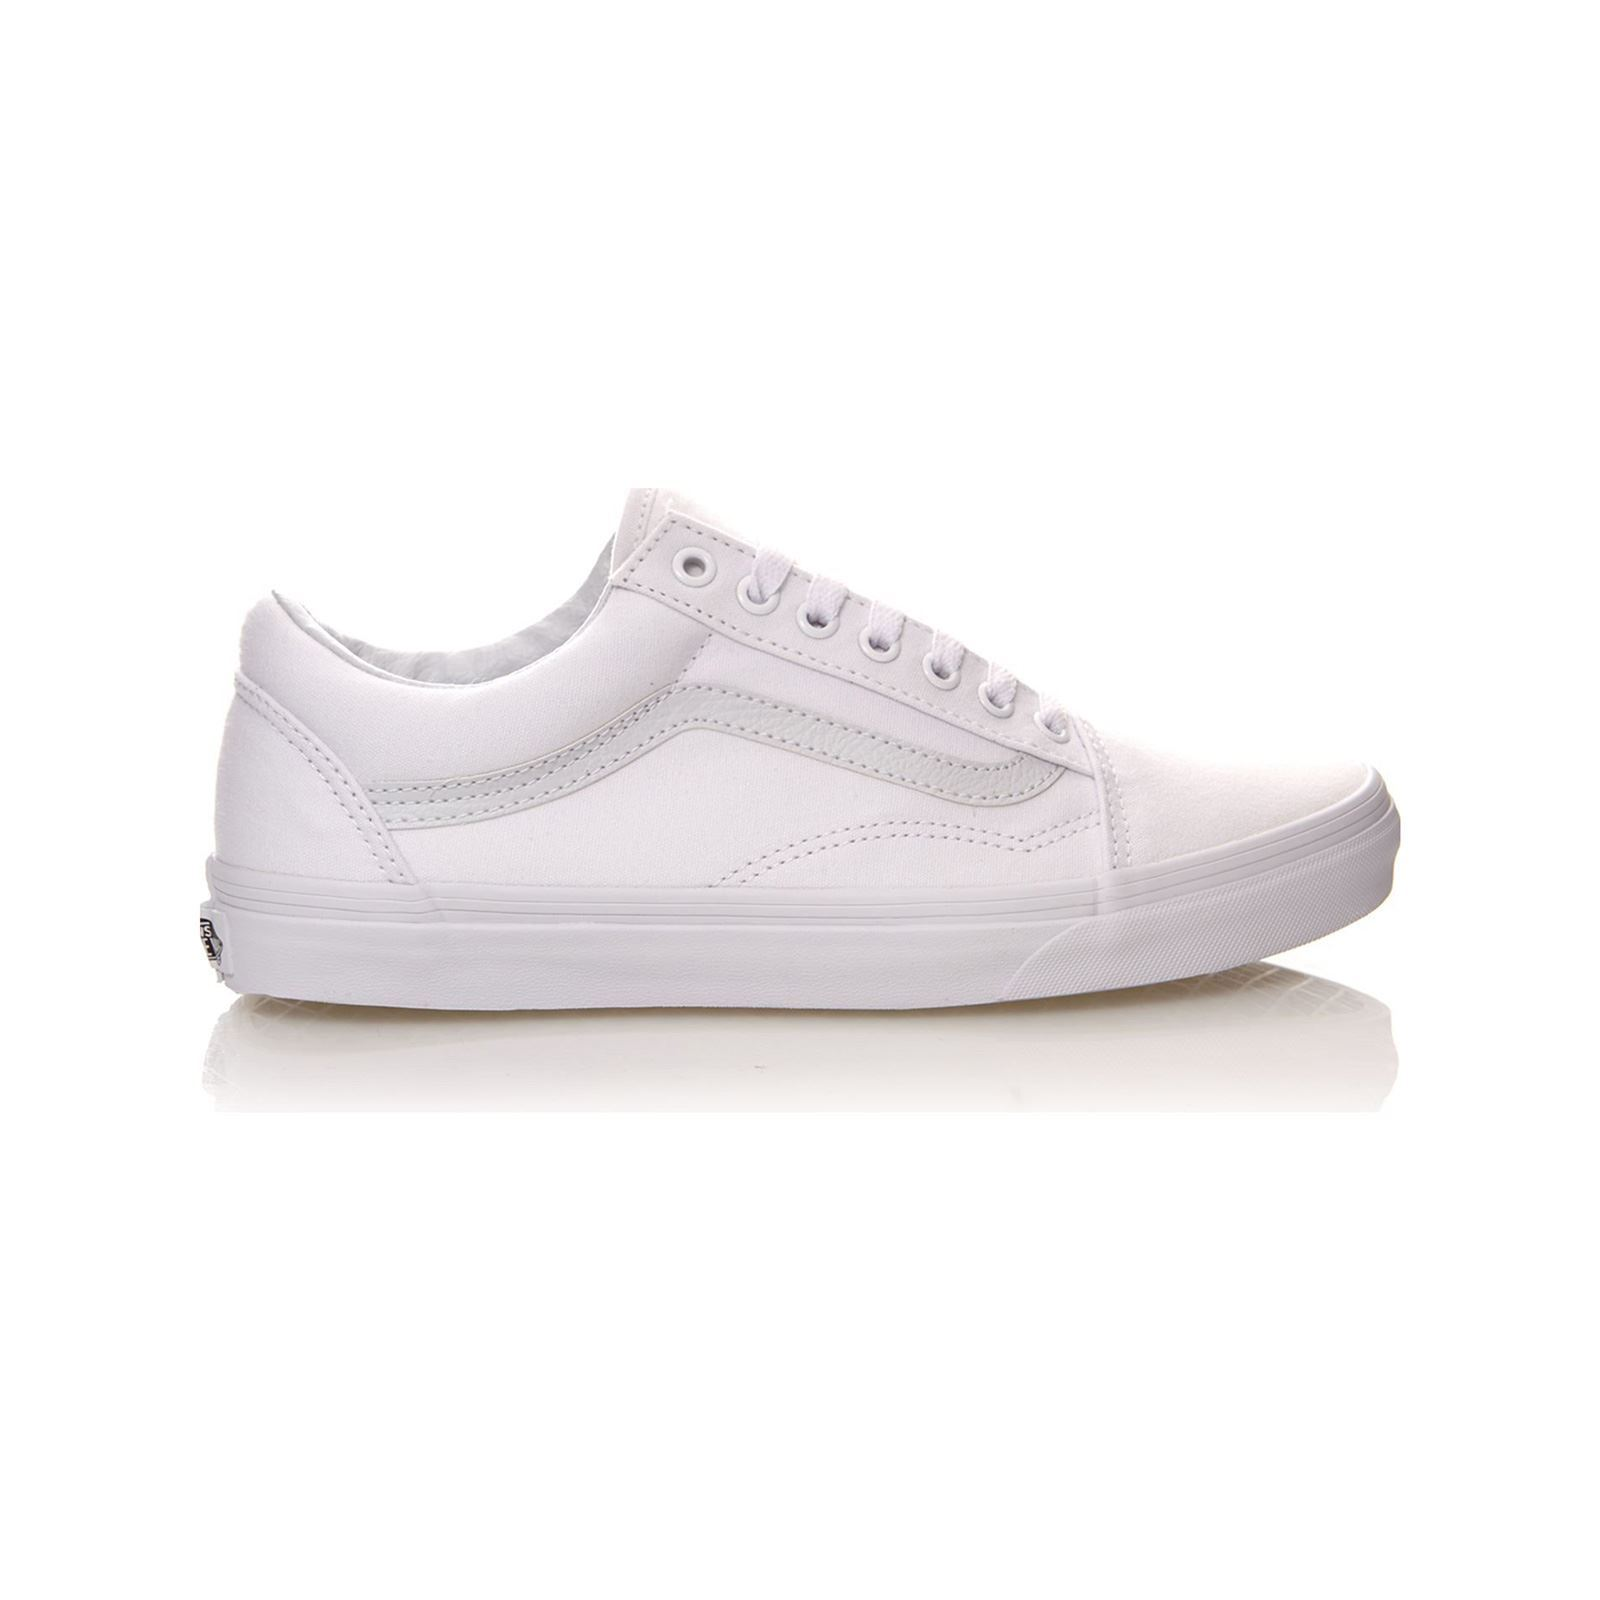 Sneakers Brandalley Bianco Da Scarpe Old Skool Vans Tennis 1npq0HXxF 1c78fb4567d